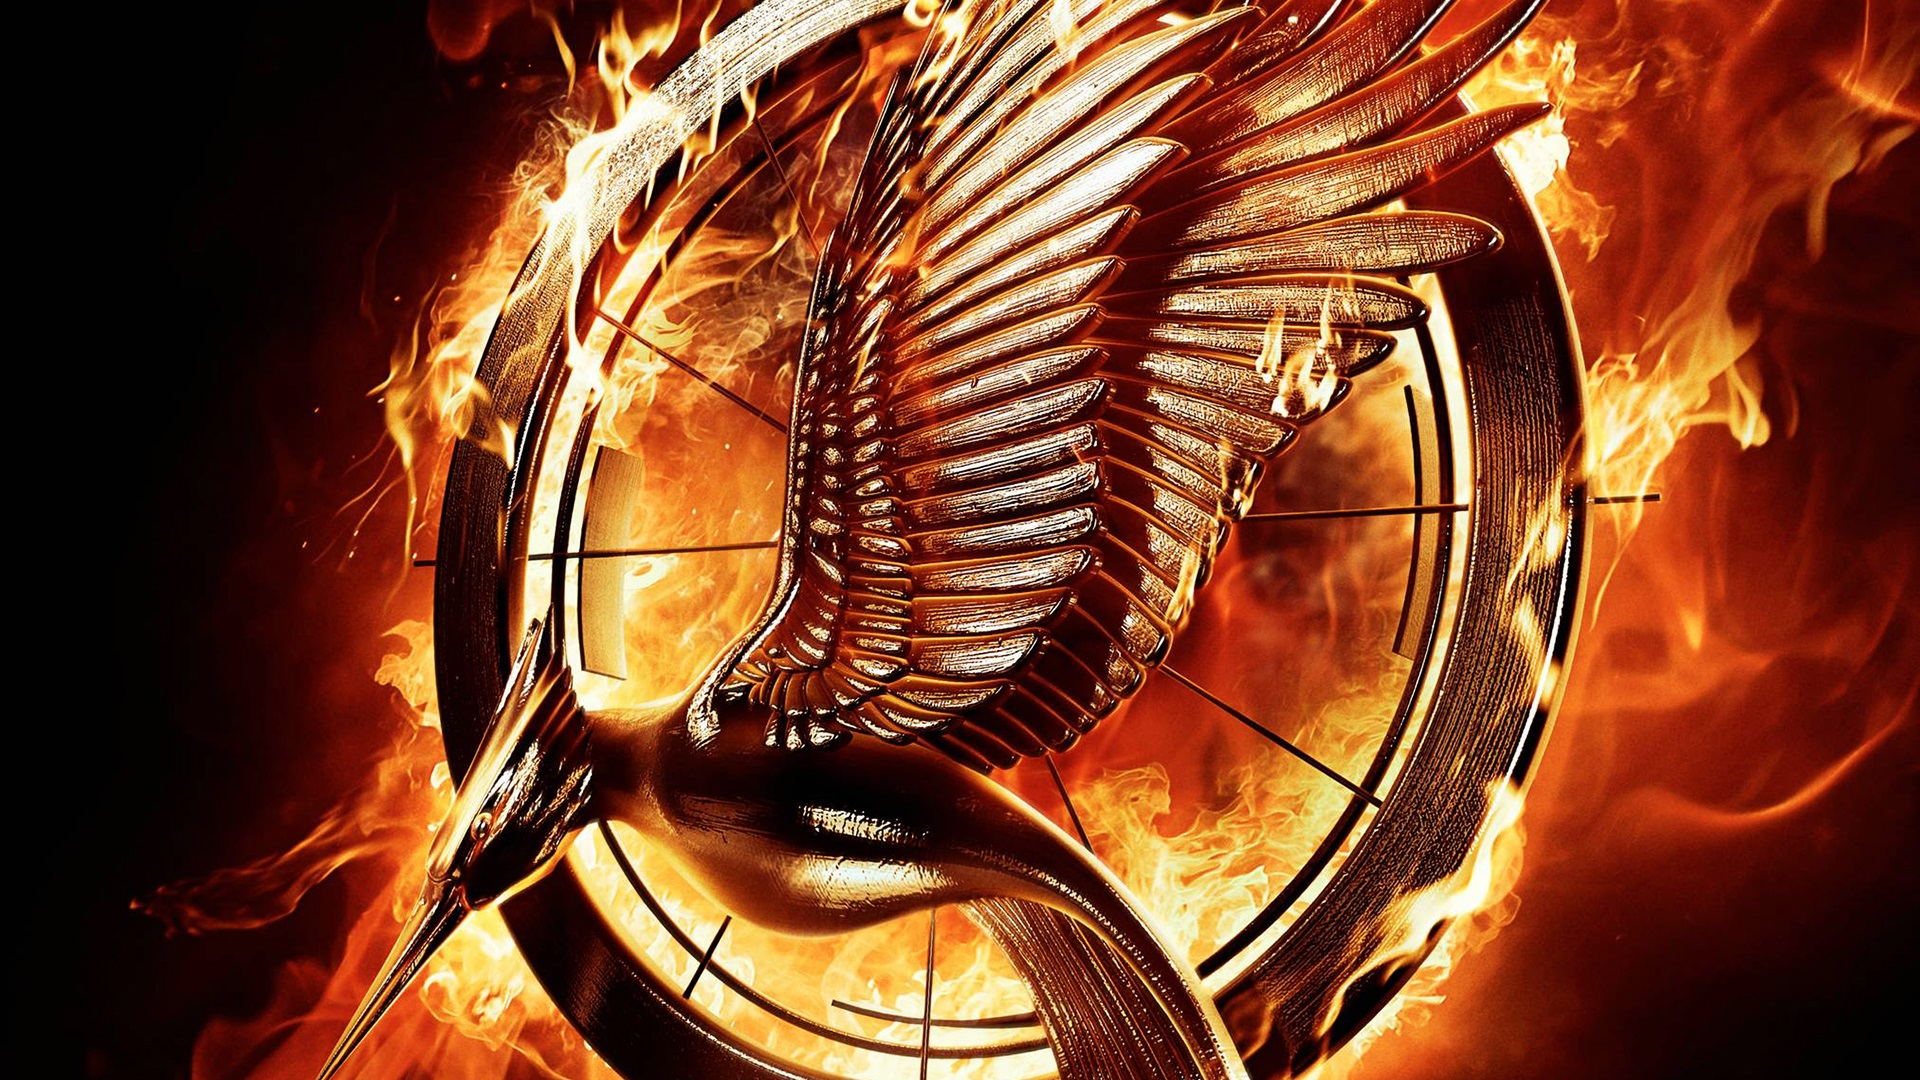 The Hunger Games Wallpaper 26